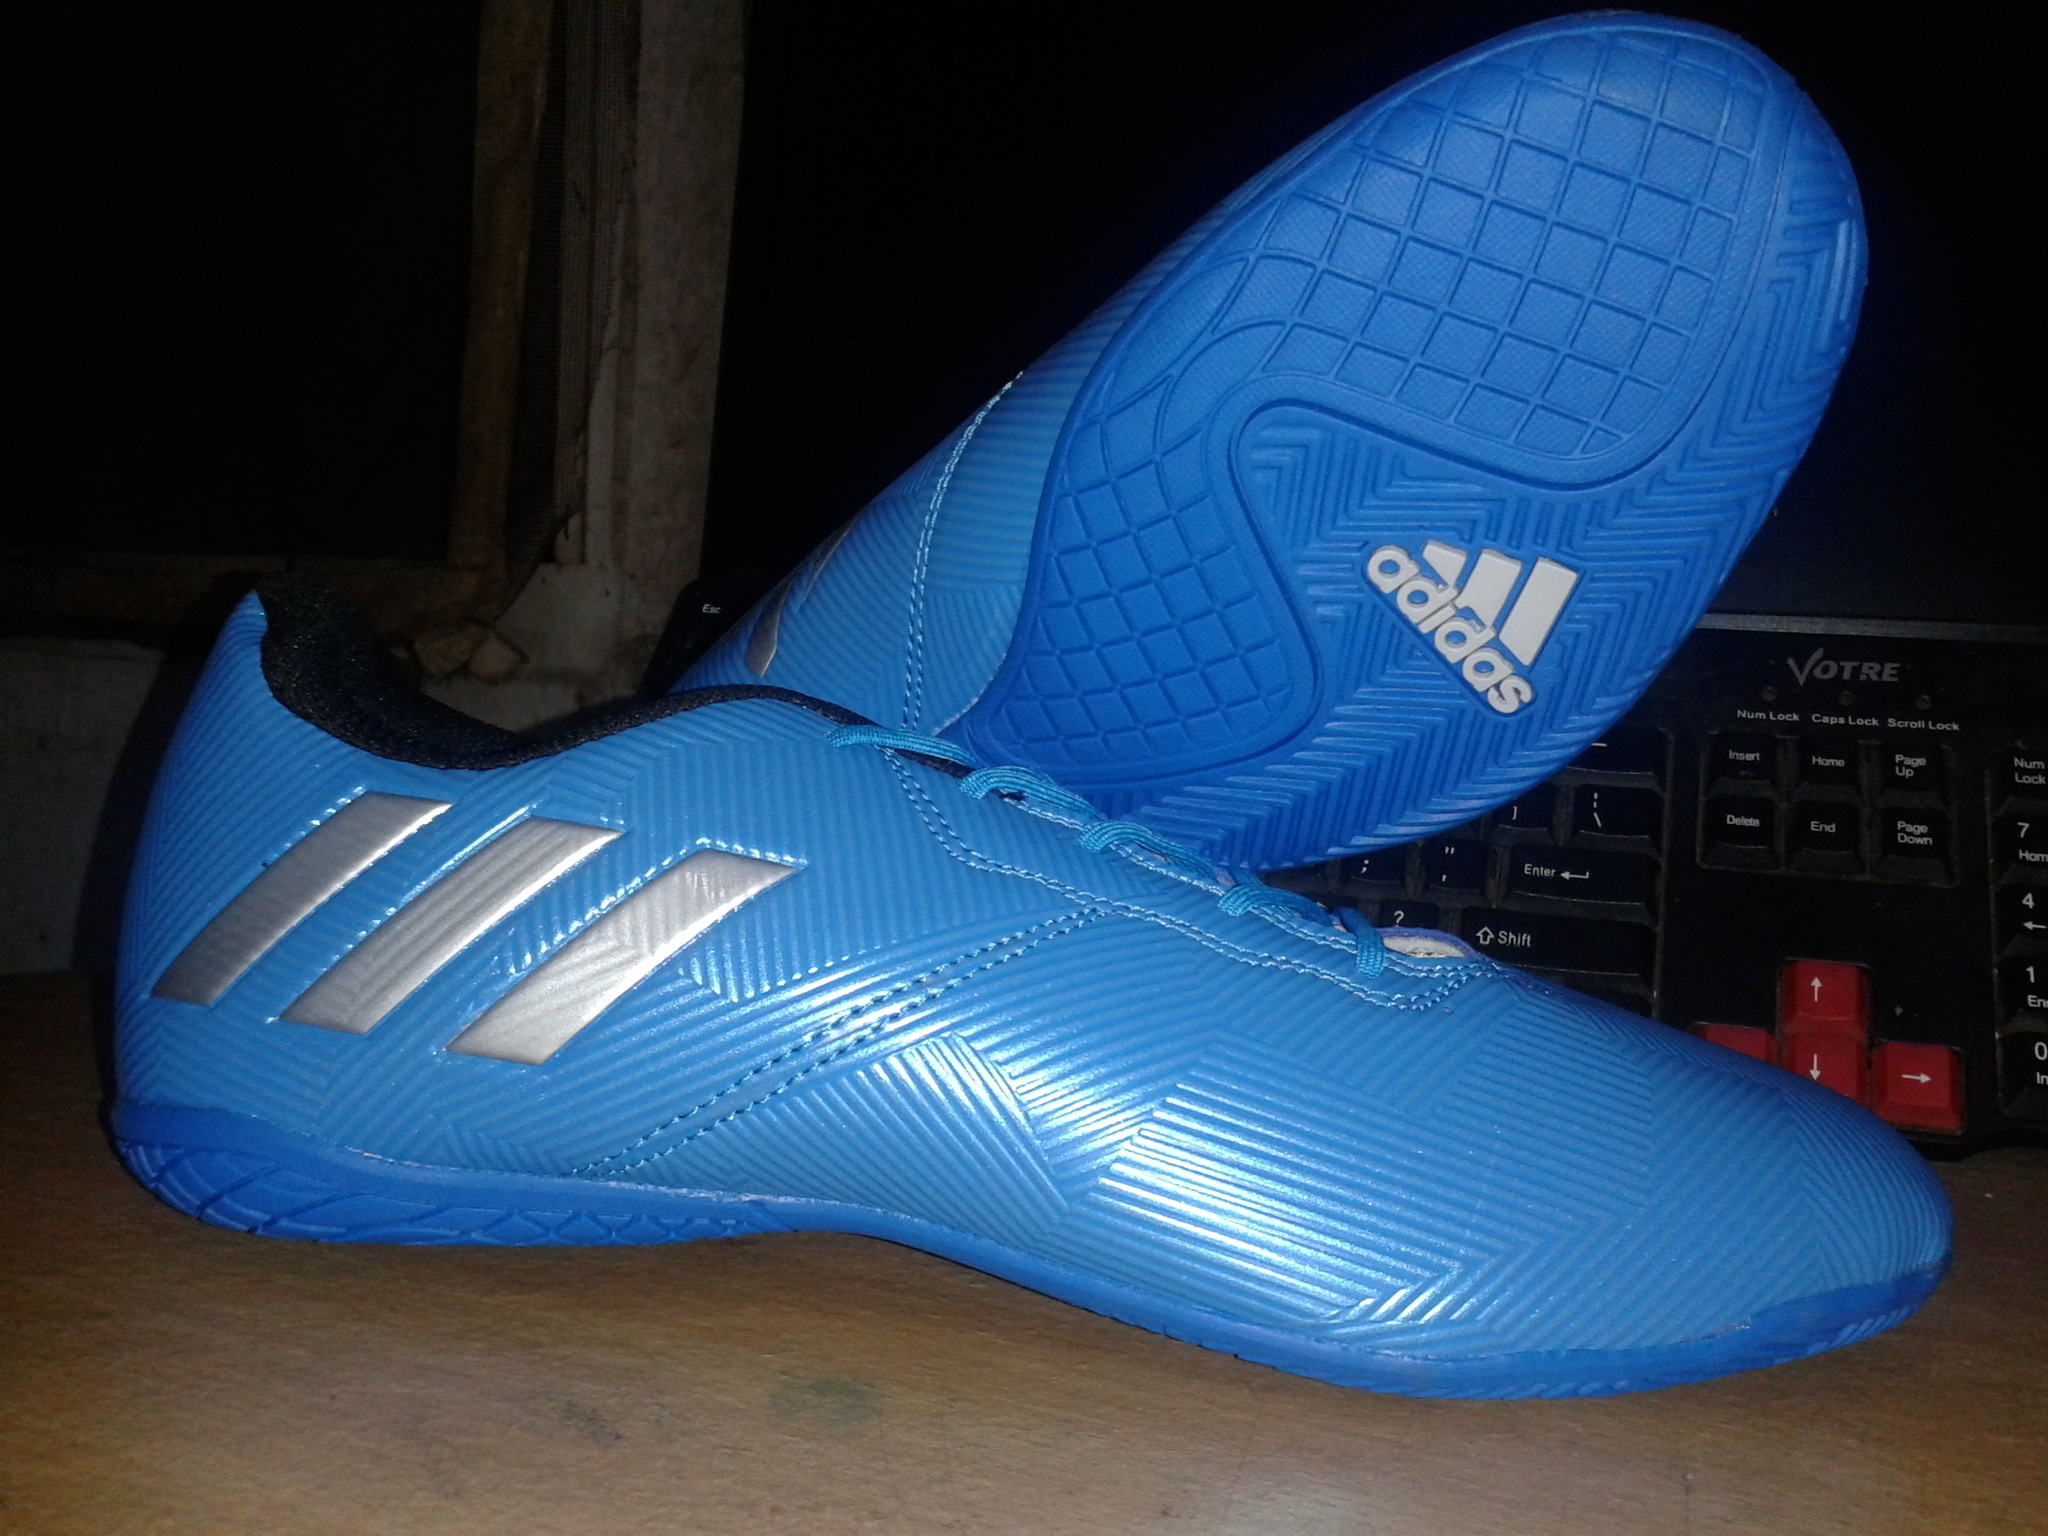 Sepatu Futsal Adidas Messi Best Pictures Of Gold Komponen Original Jual Ace Blue Vs Ronaldo